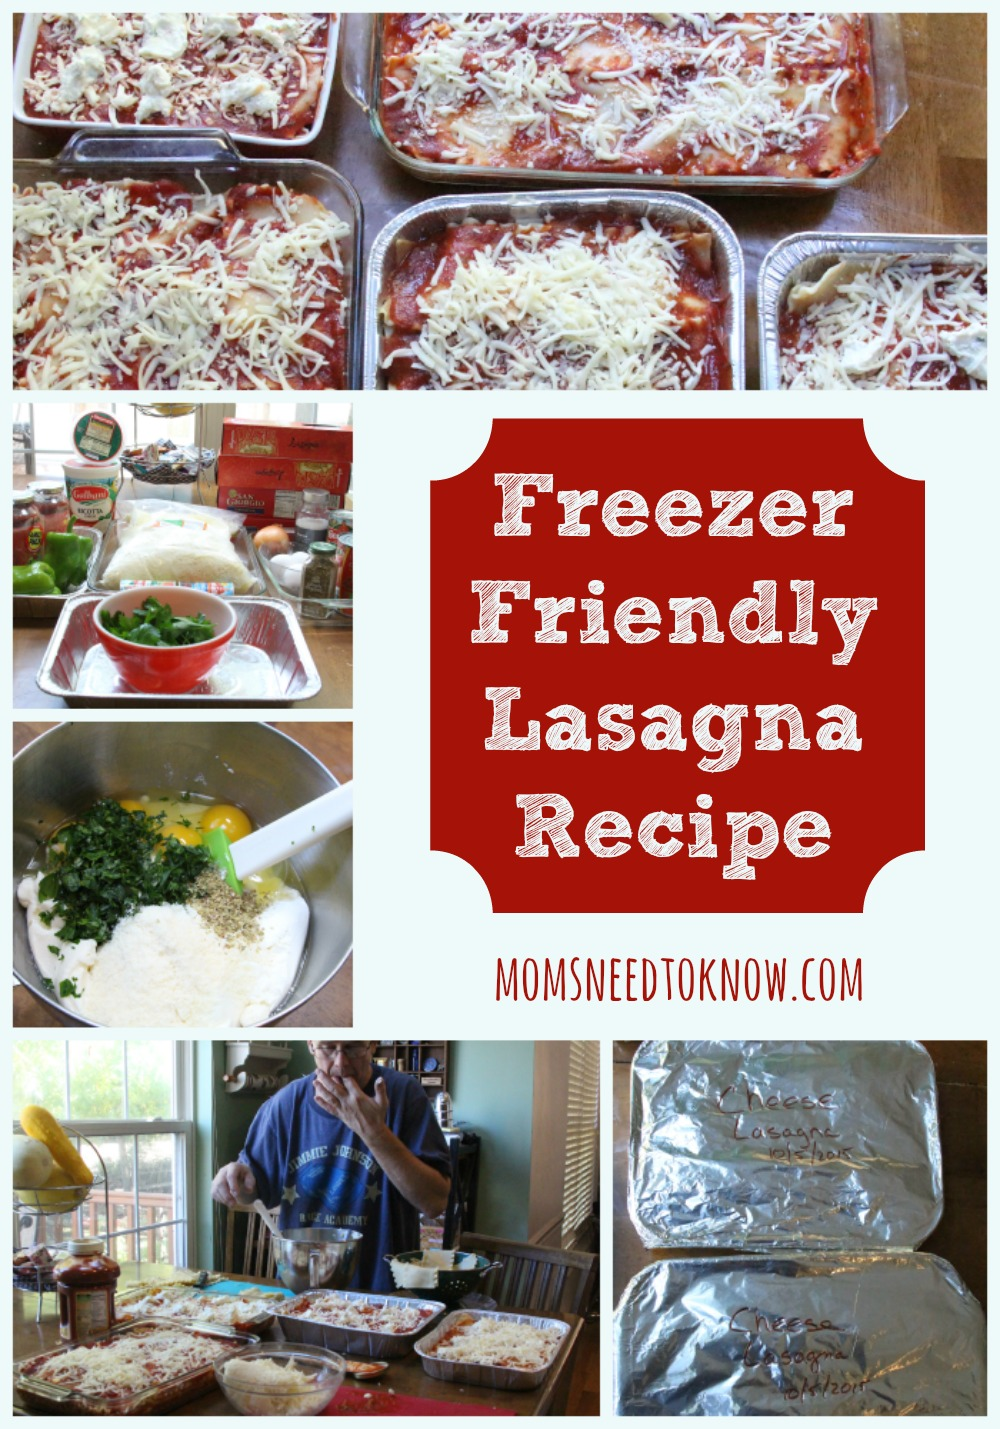 It is just as easy to make 4 lasagnas as it is to make 1 and this freezer friendly lasagna recipe is sure to be a hit in your family!